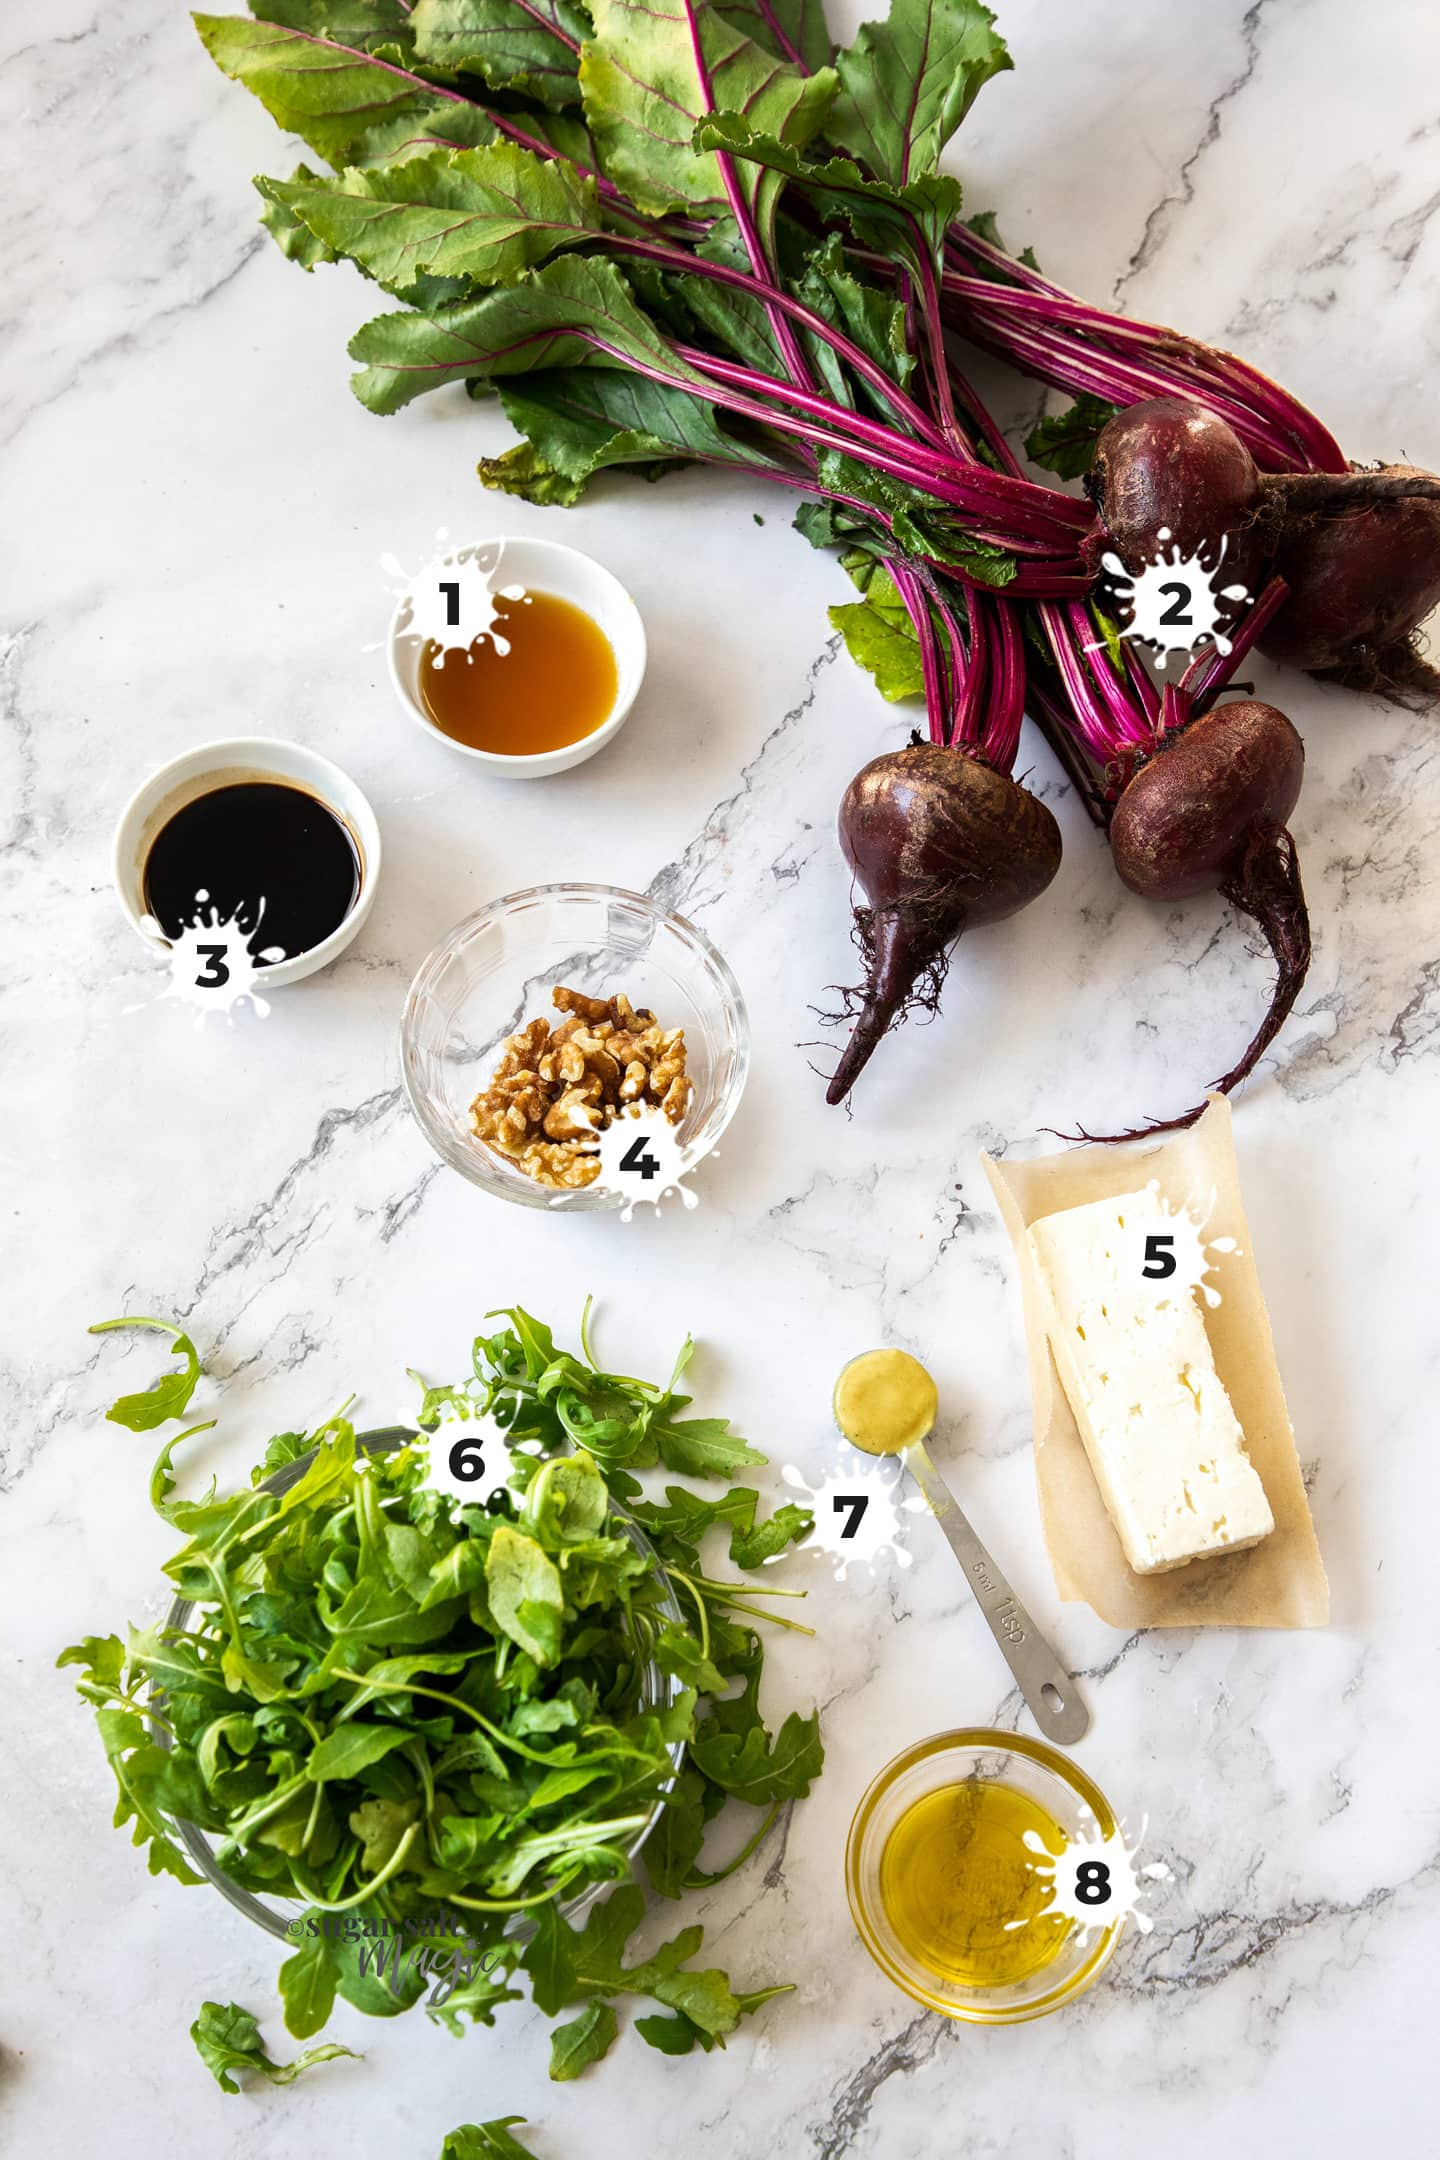 Ingredients for roasted beetroot feta salad